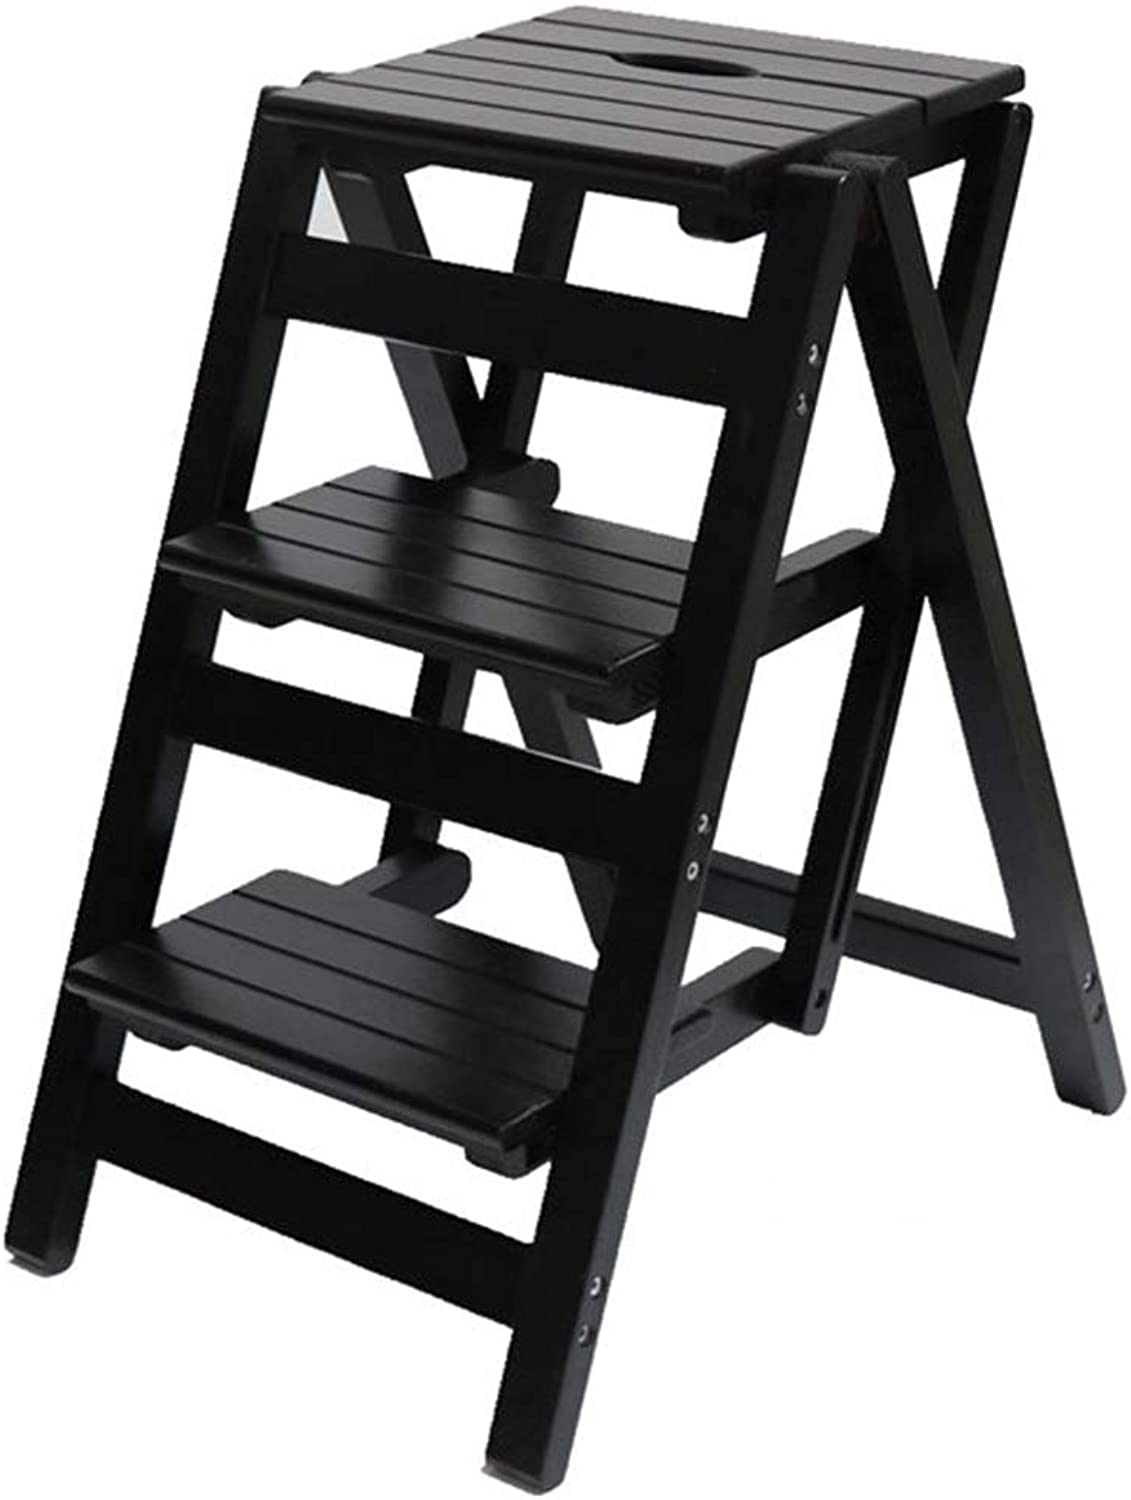 Step Stool Solid Wood,Household Simple Chairs Modern Stepladder Step Stool Folding Ladder Household Stool Ladder Kitchen,A